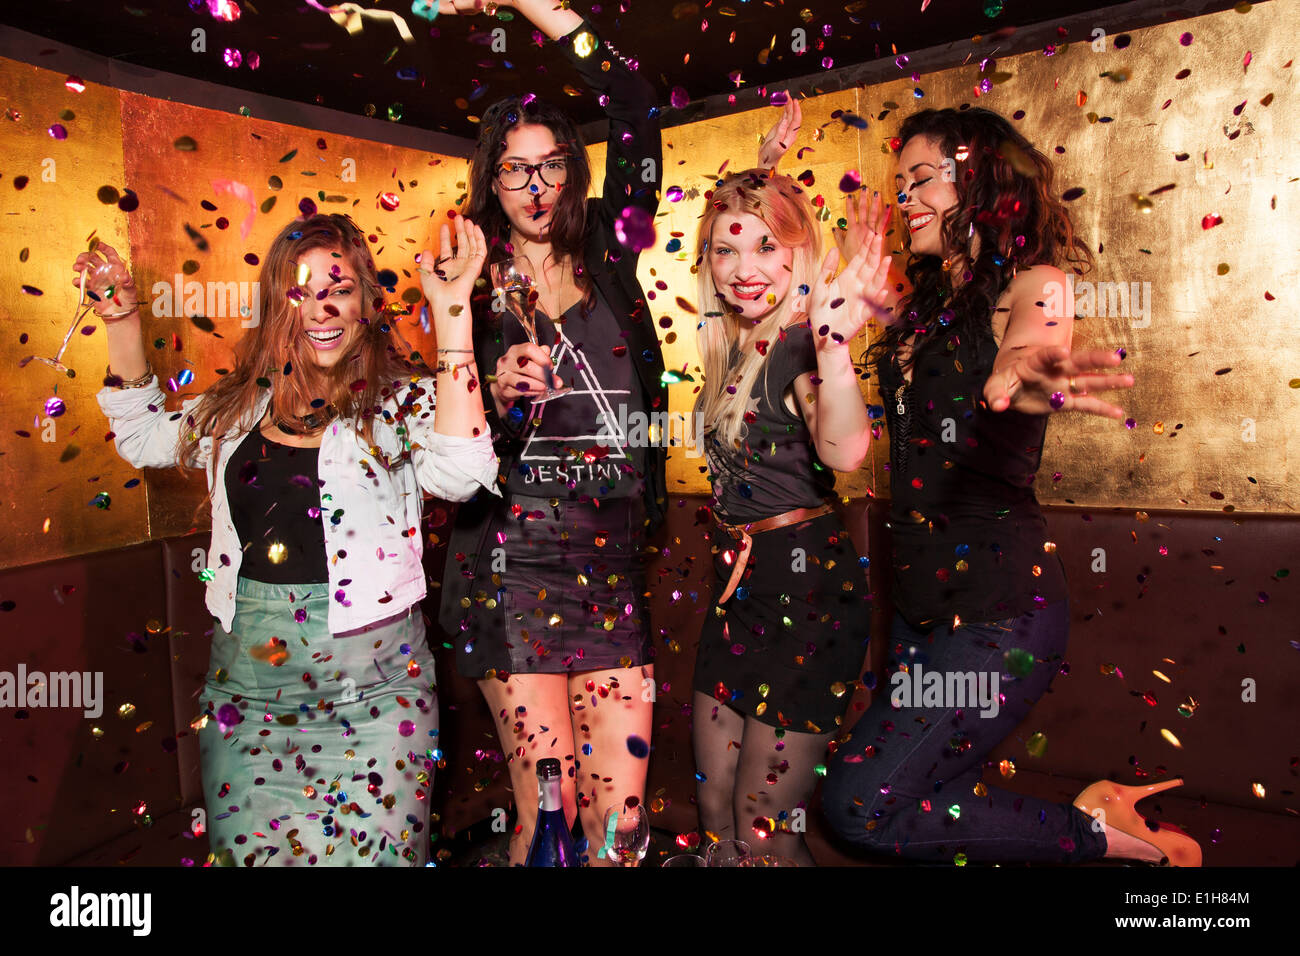 Four female friends partying in nightclub - Stock Image